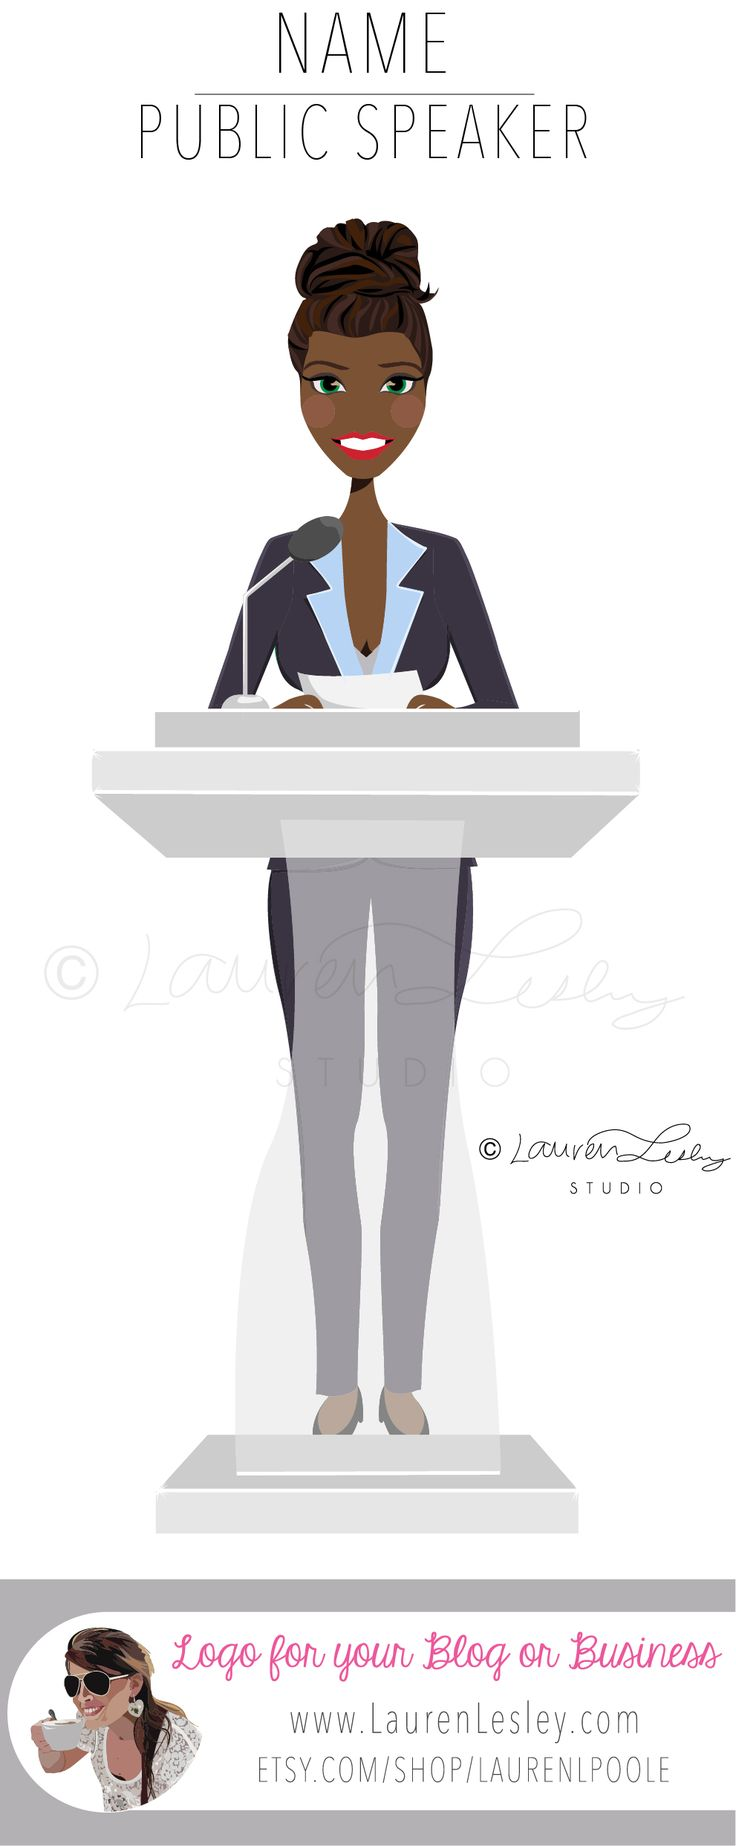 Public Speaking | Public Speaking Tips | Public Speaking Anxiety | Public Speaking Teaching | Public Speaking Motivation | Public Speaking Graphic | Public Speaking Design | Public Speaker Logo | Female Leader | Woman Leader | Politician Outfit | Politician Fashion | Women Politician | African American Politician | African American Woman | Politician Graphic | African American Drawing Design